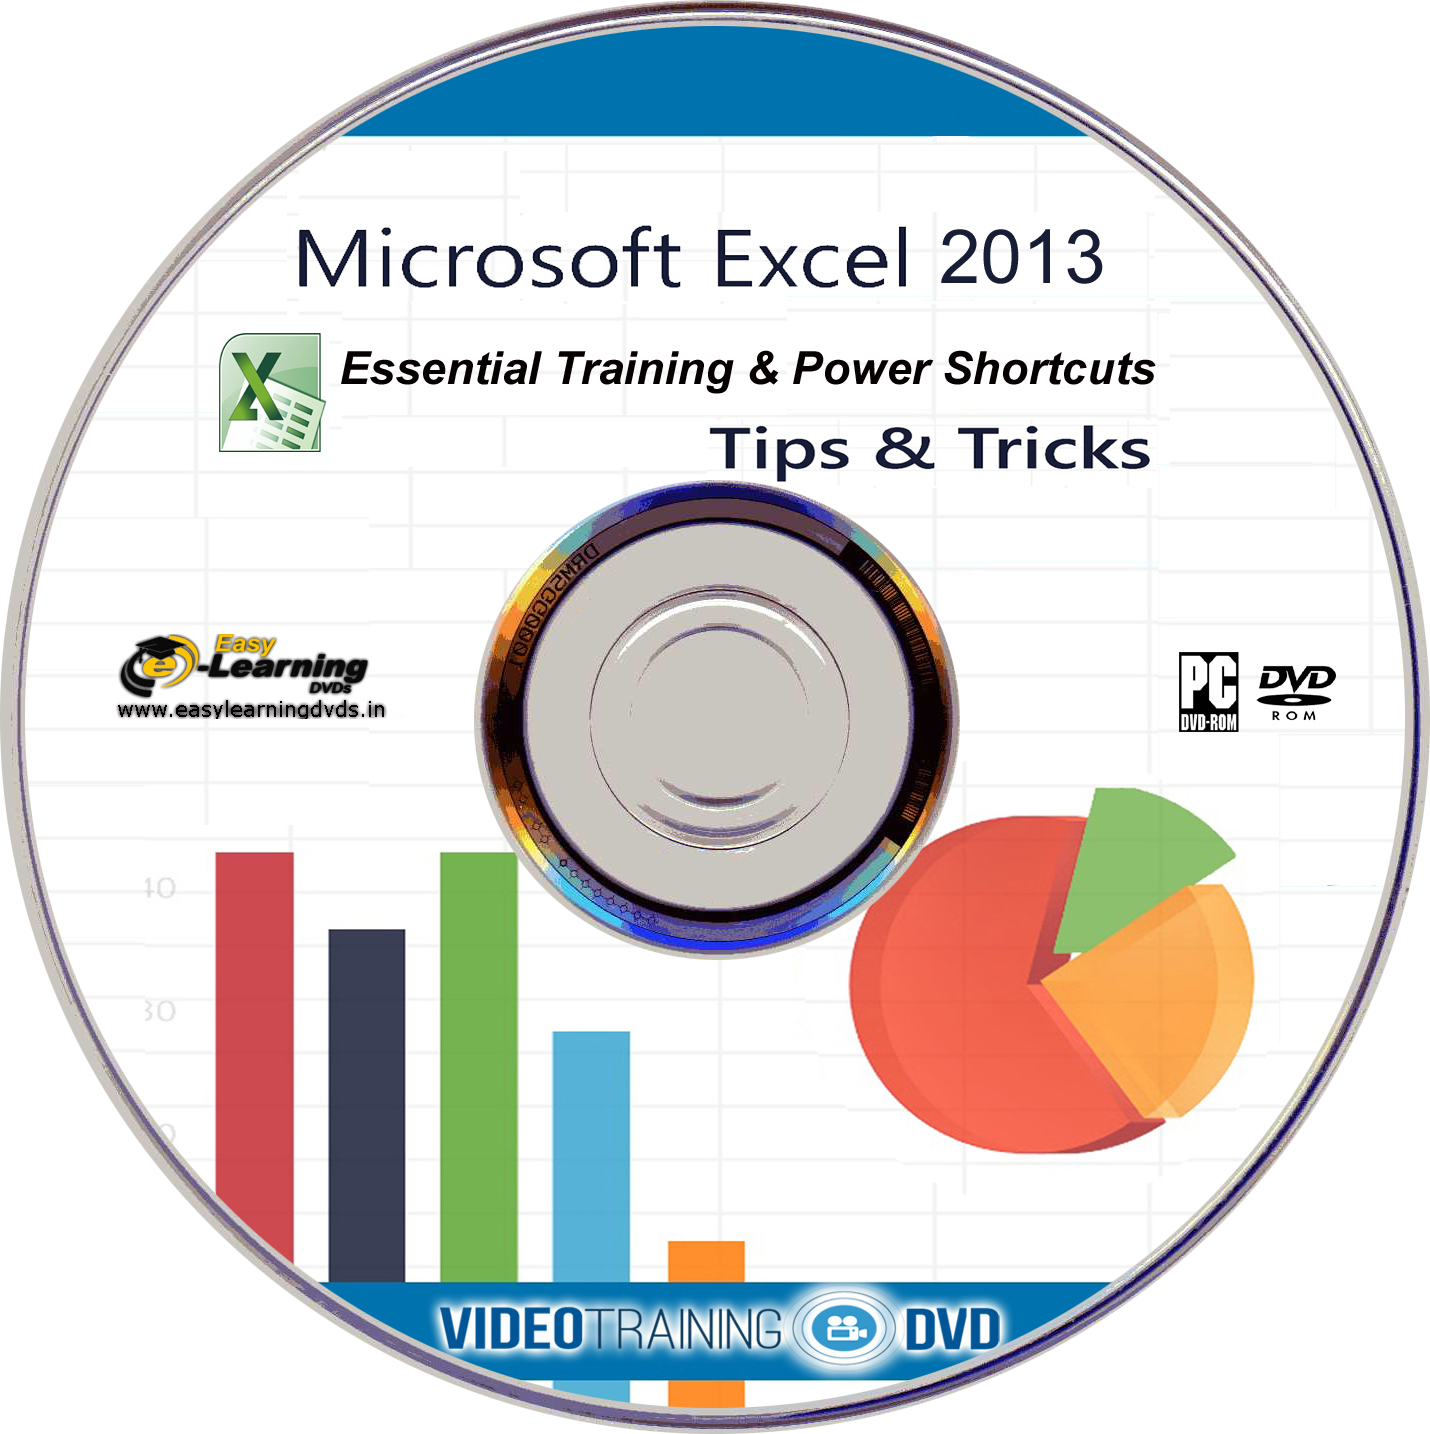 Easy Learning Dvds Learn Excel And Excel Power